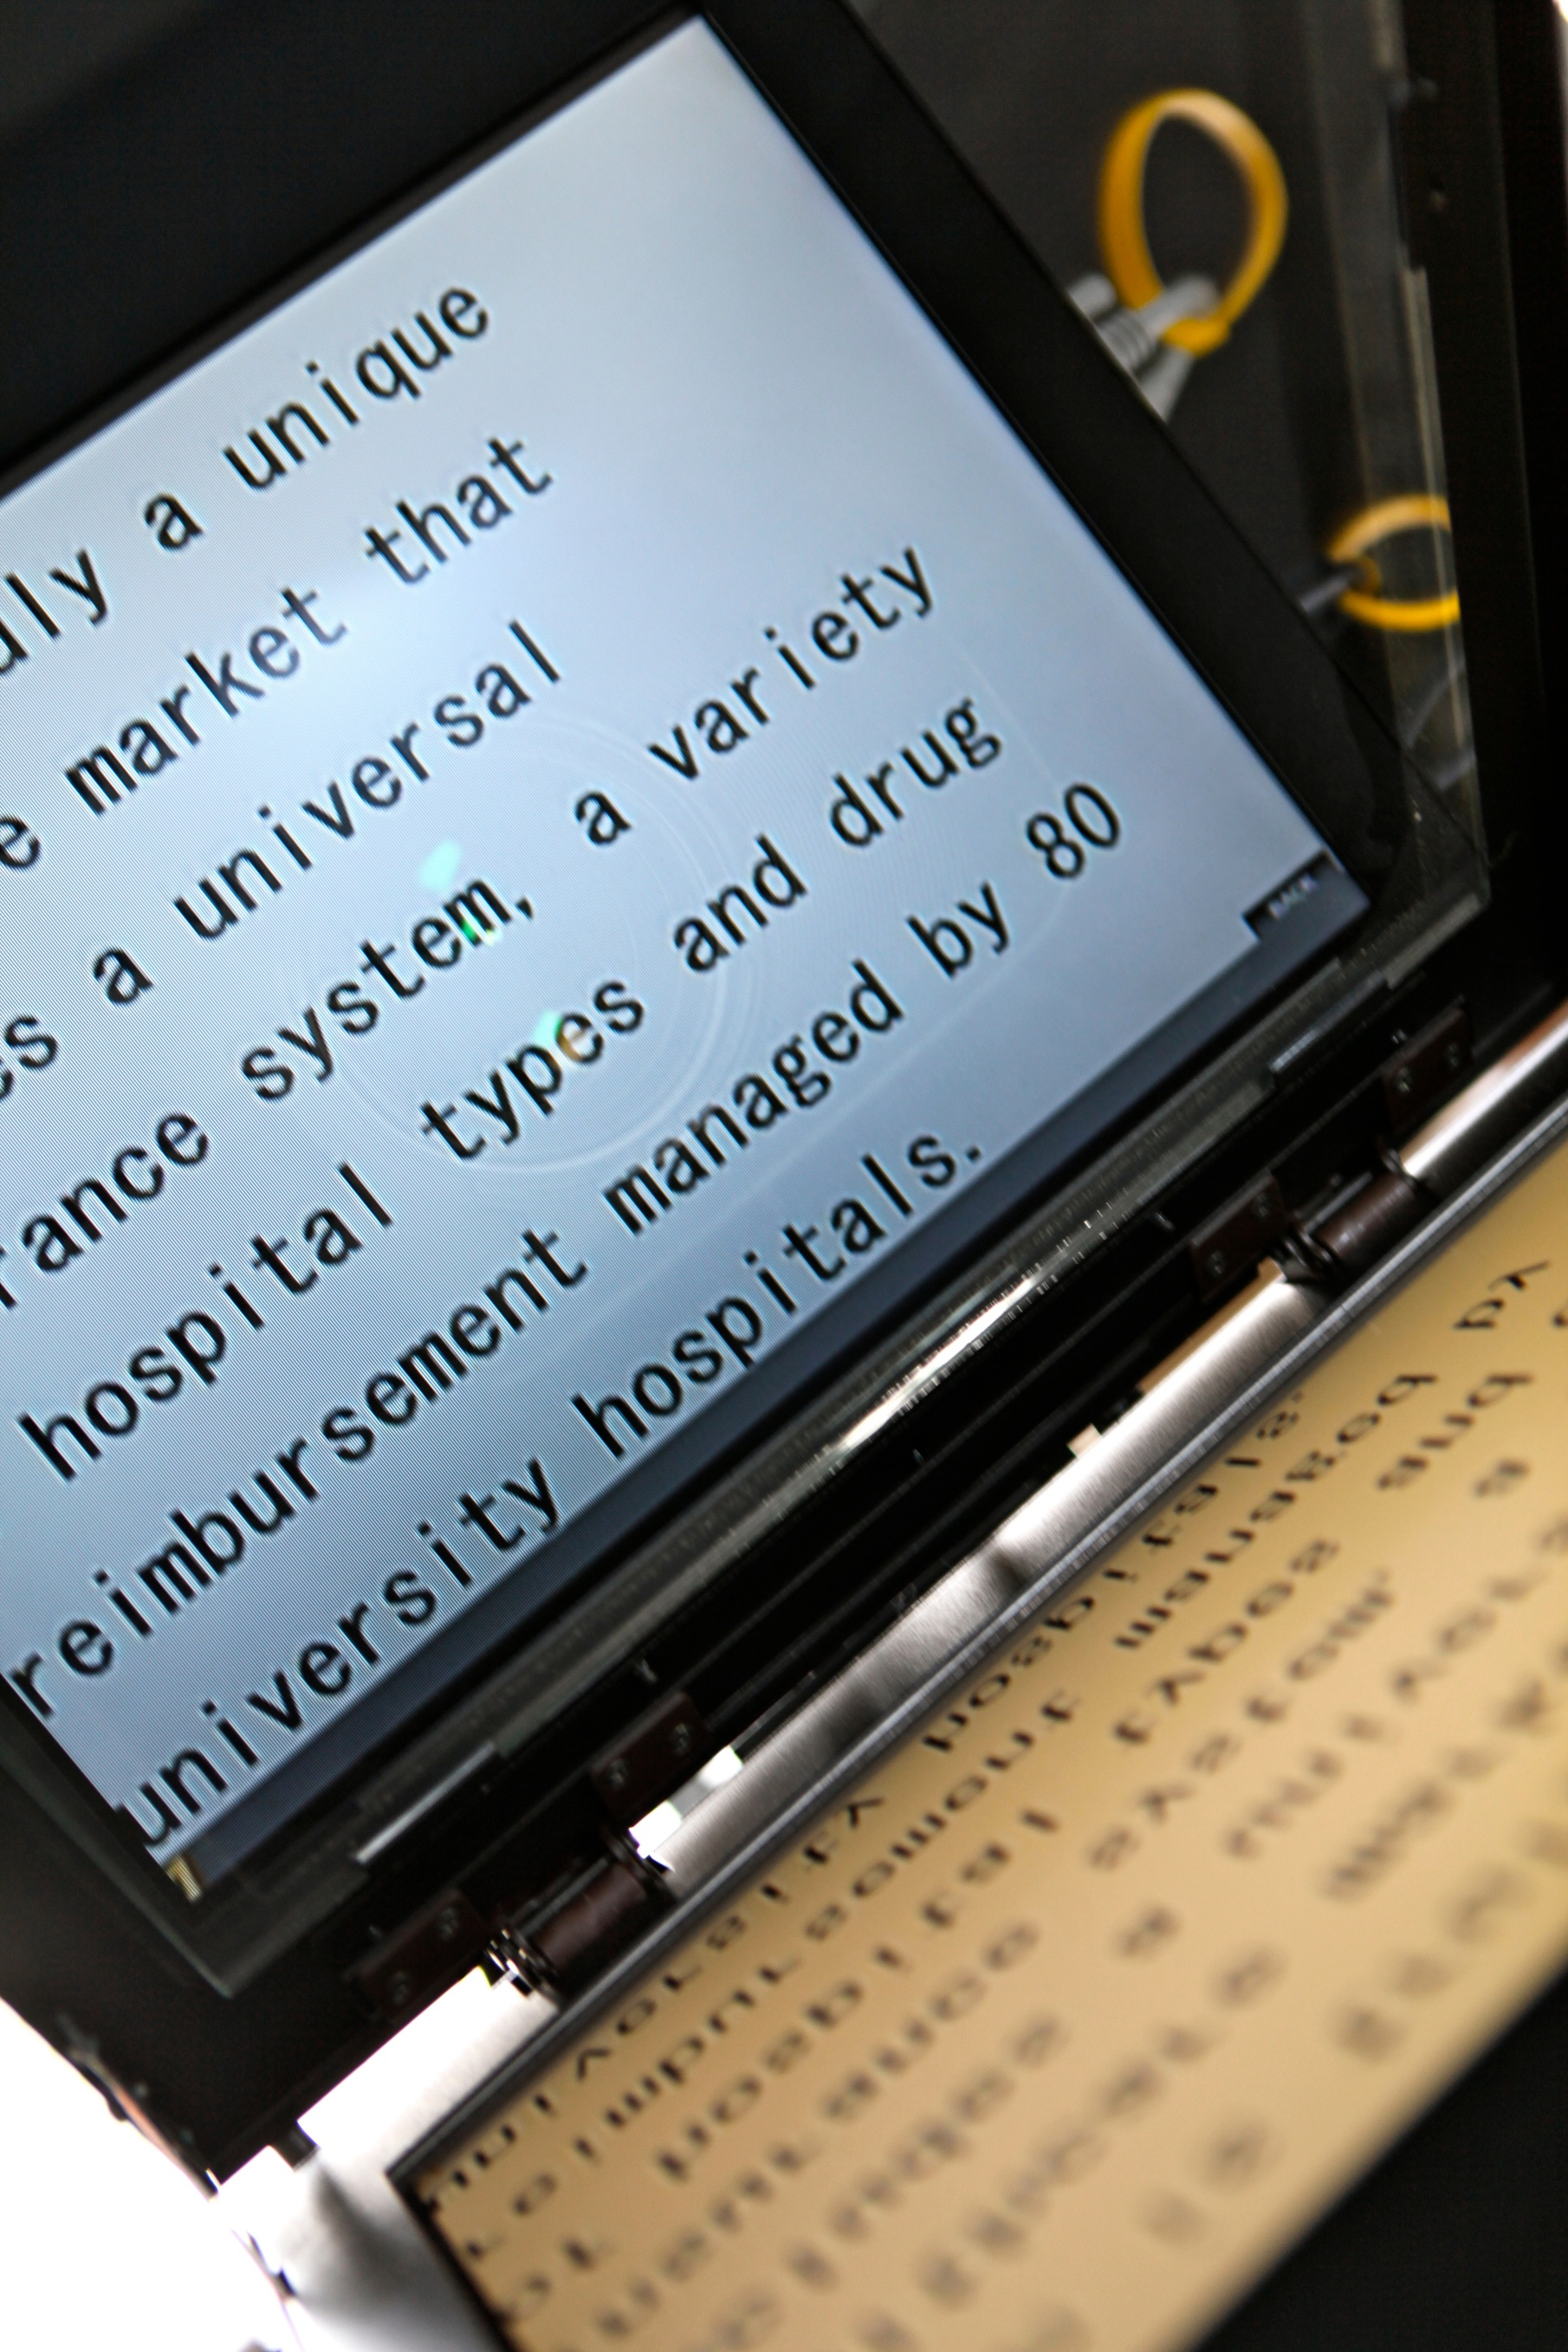 Reading, Speaking, Conveying: The Art of the Teleprompter